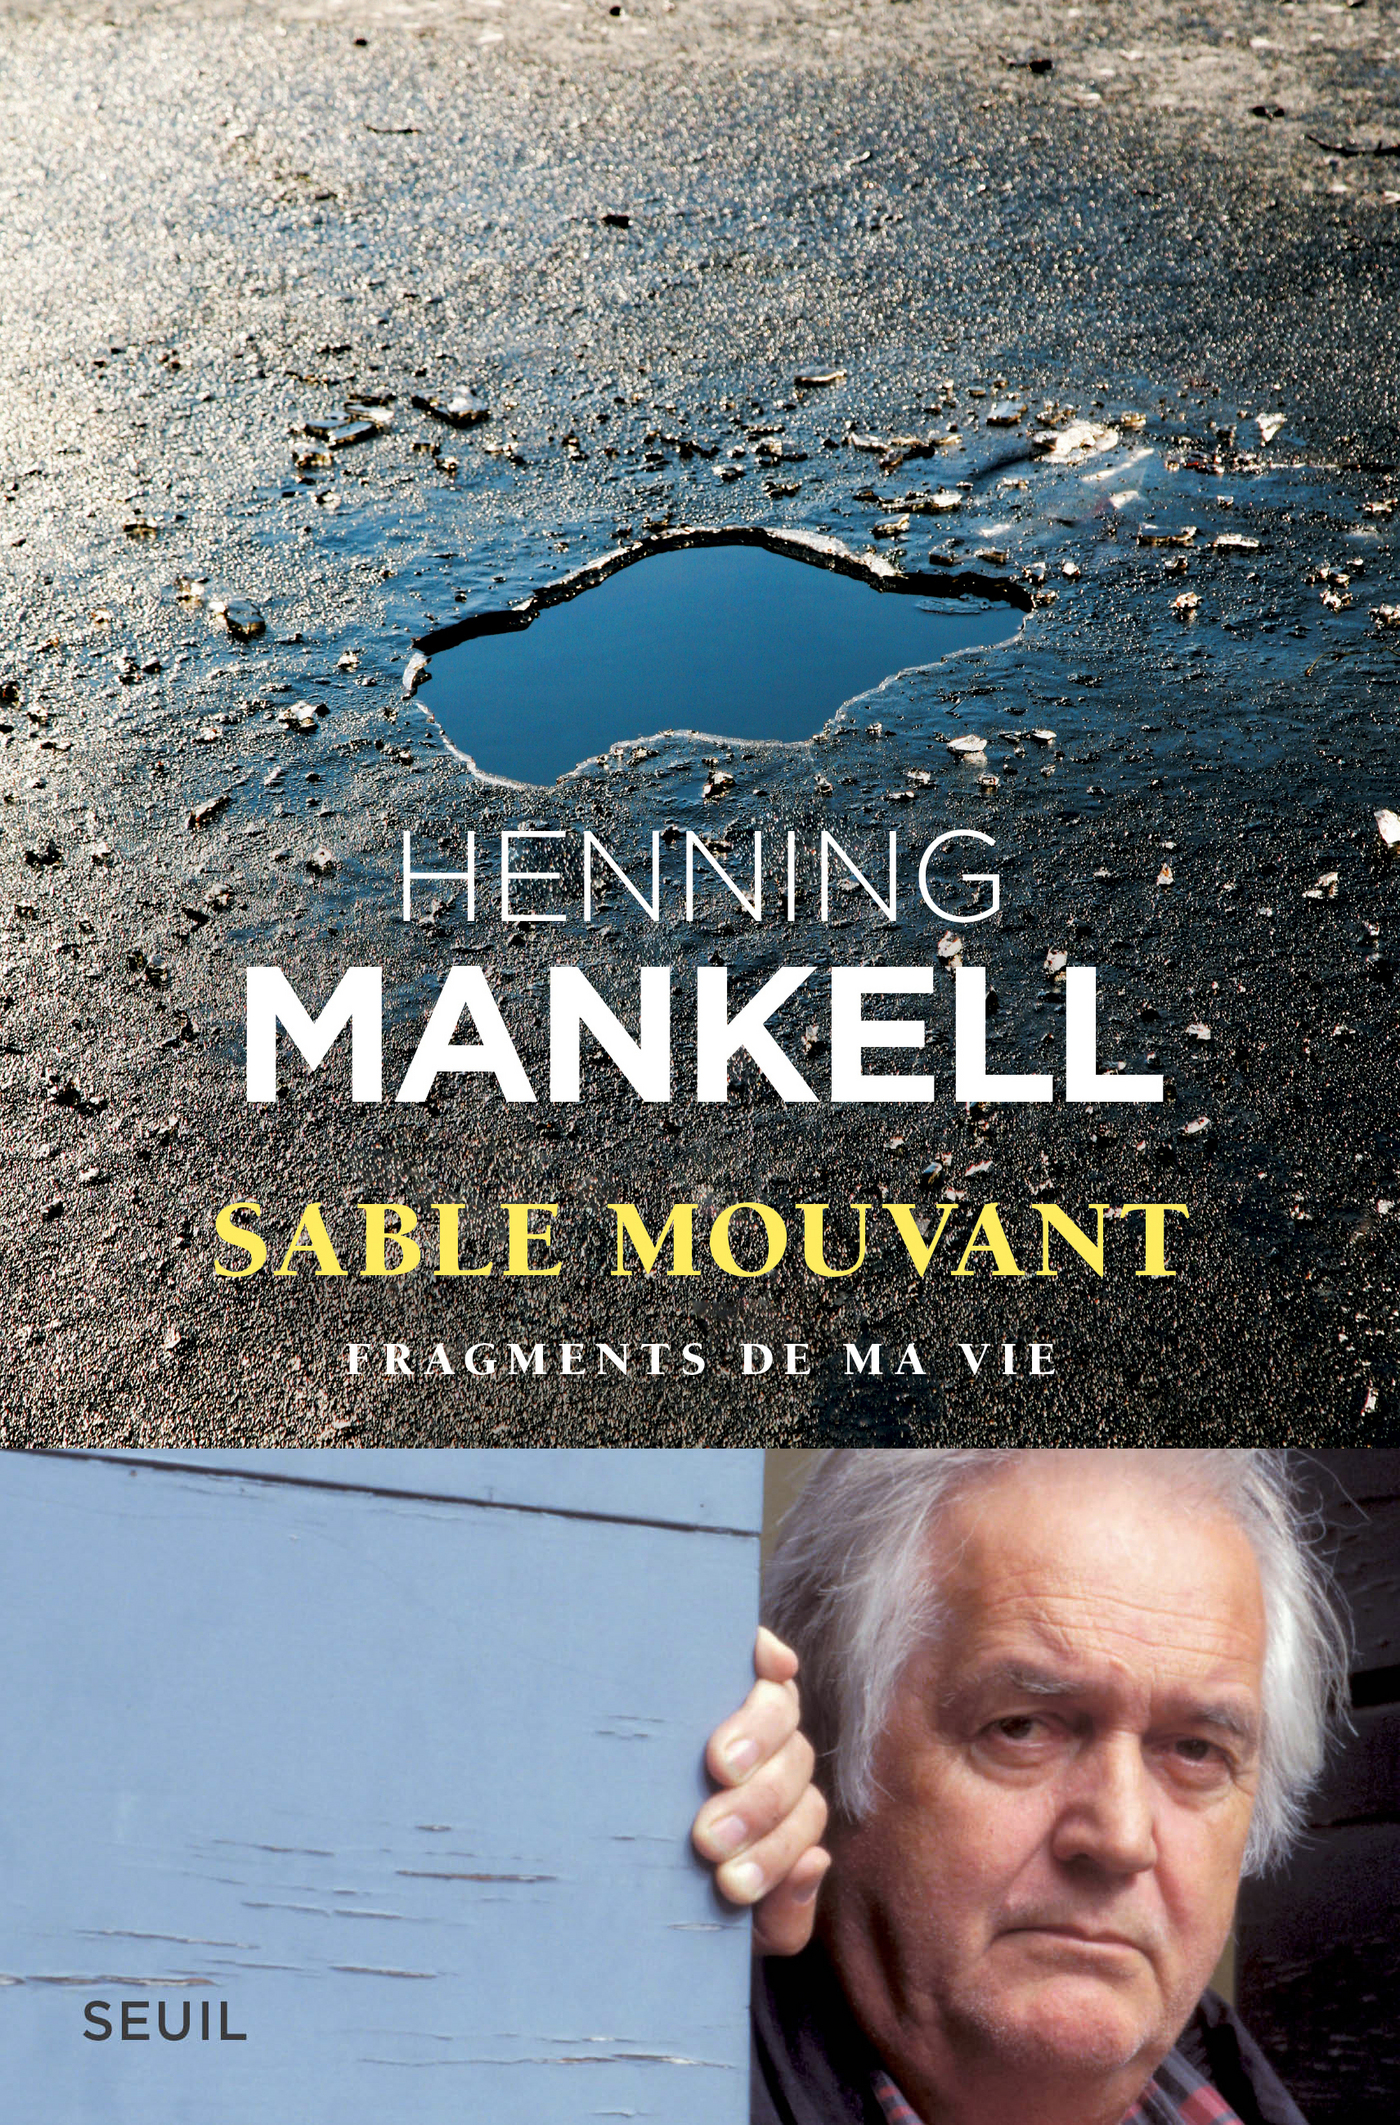 Sable mouvant. Fragments de ma vie